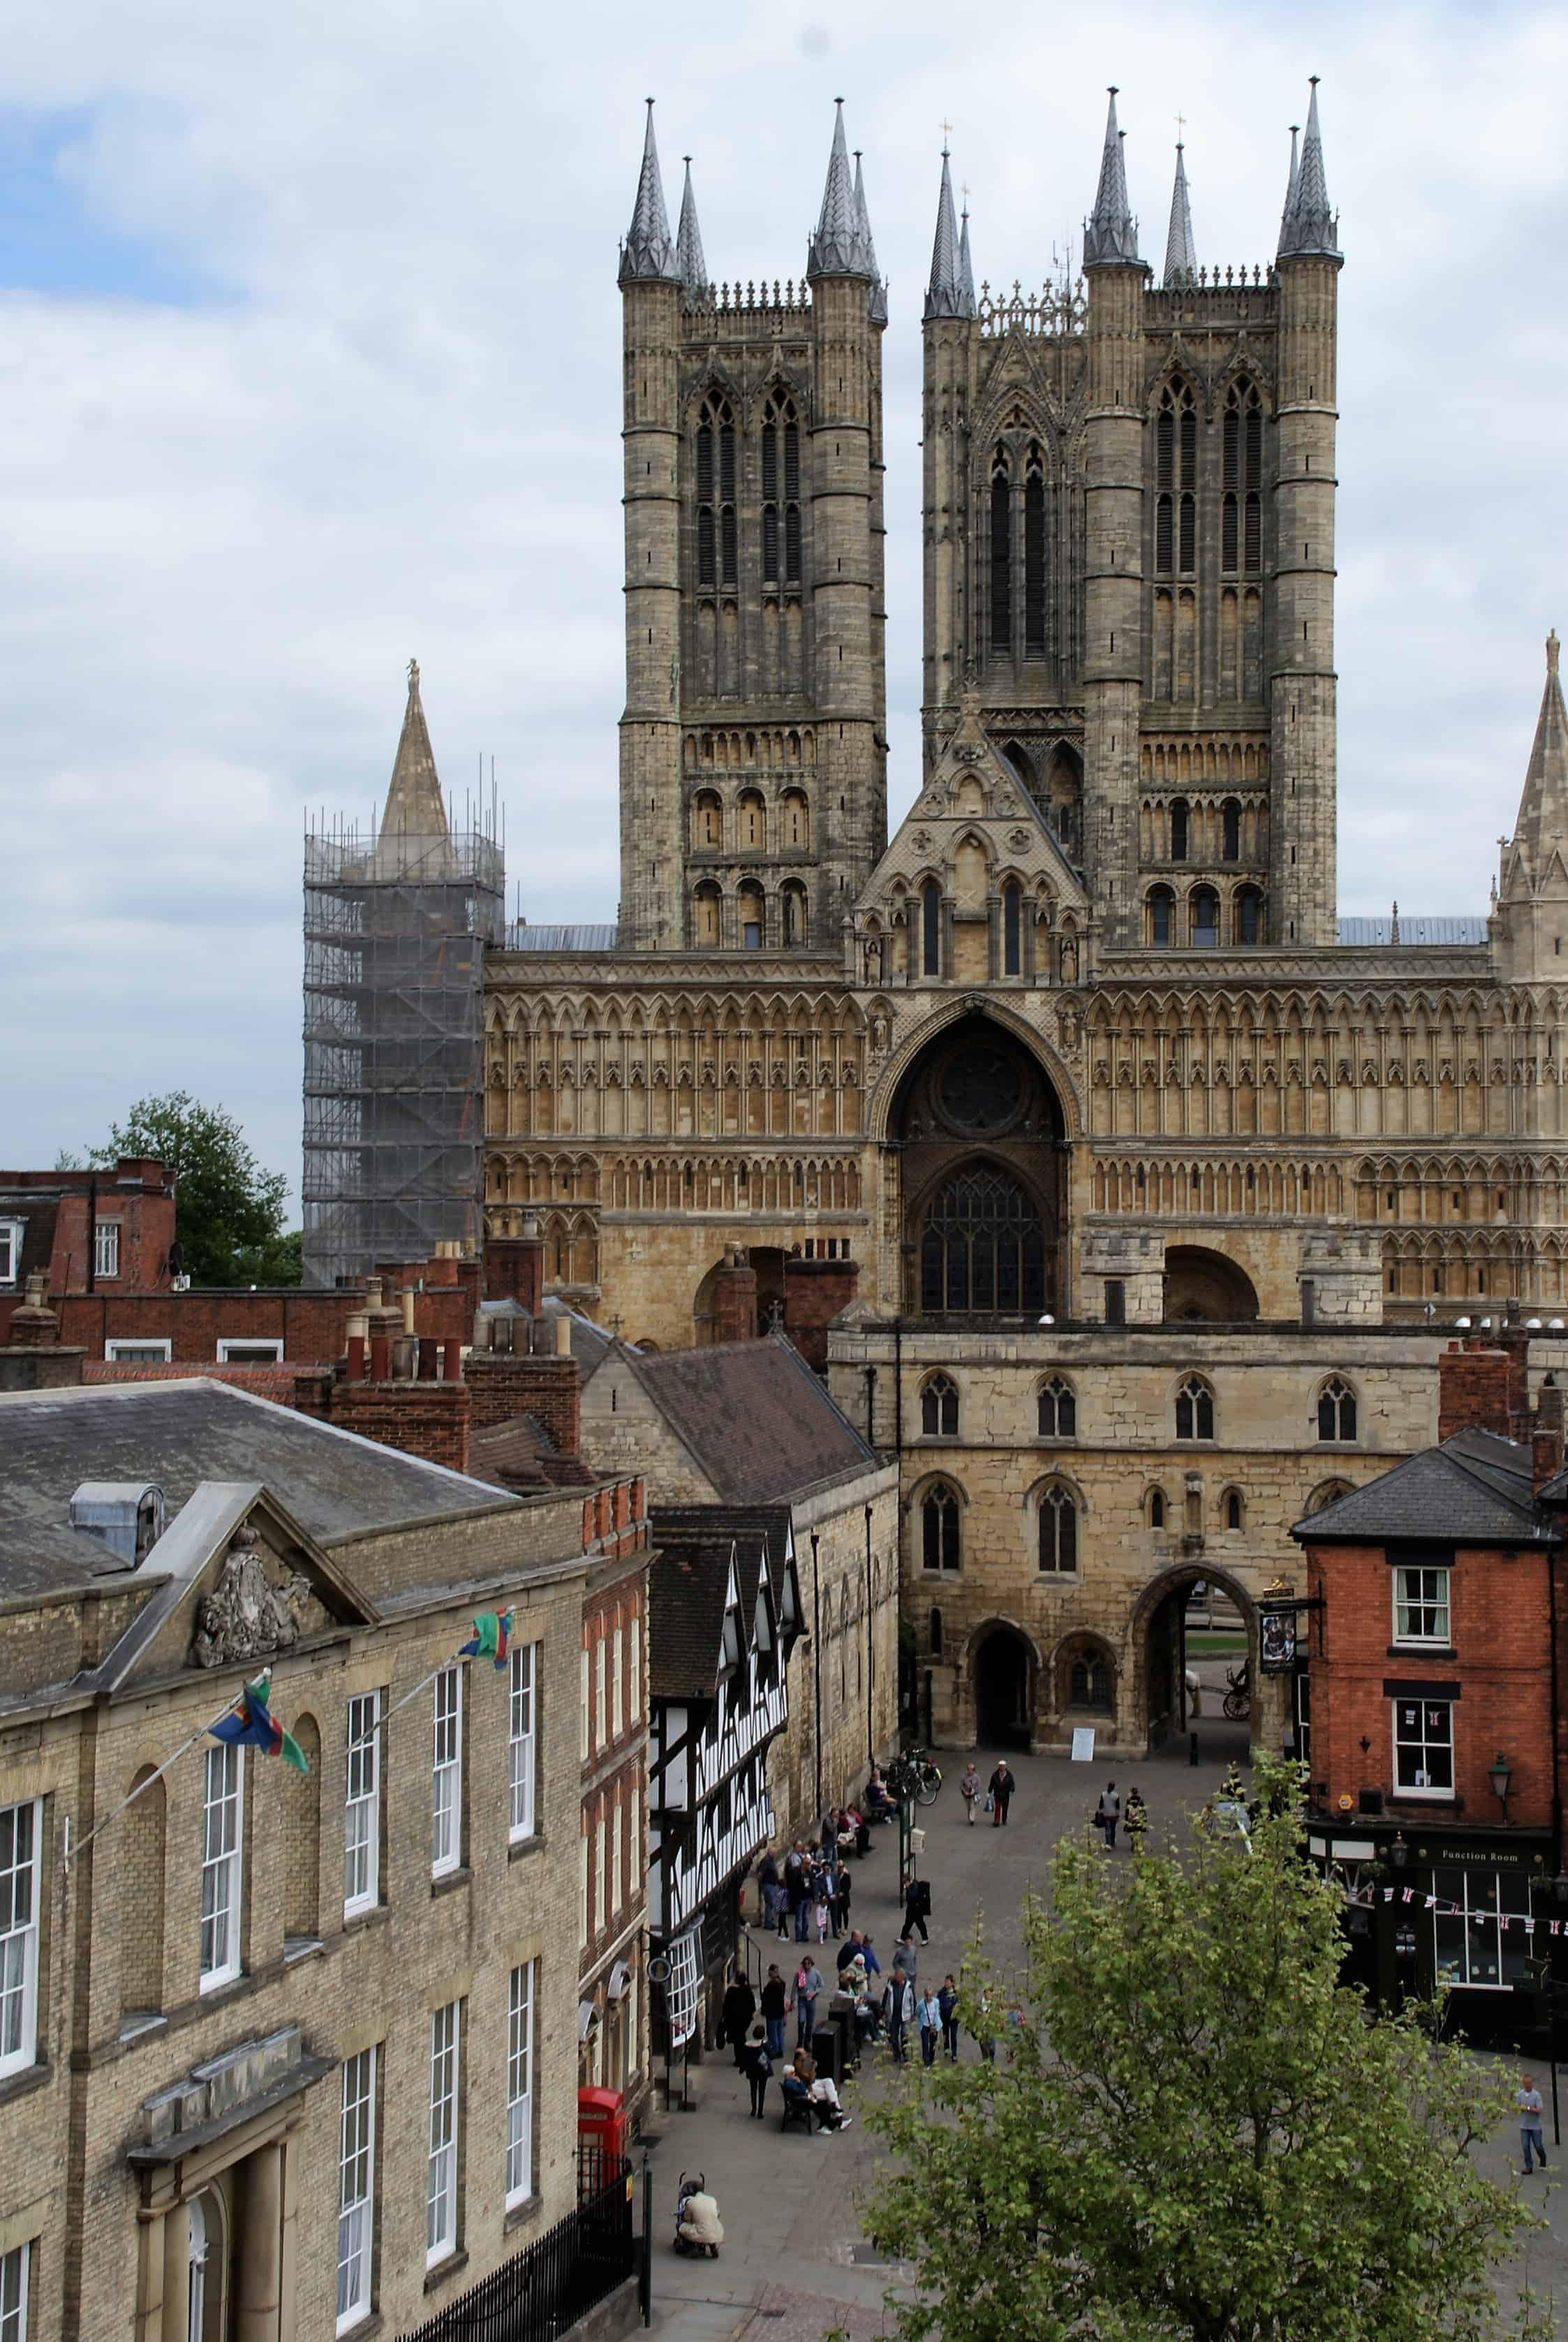 Lincoln Cathedral taken from the walls around the city